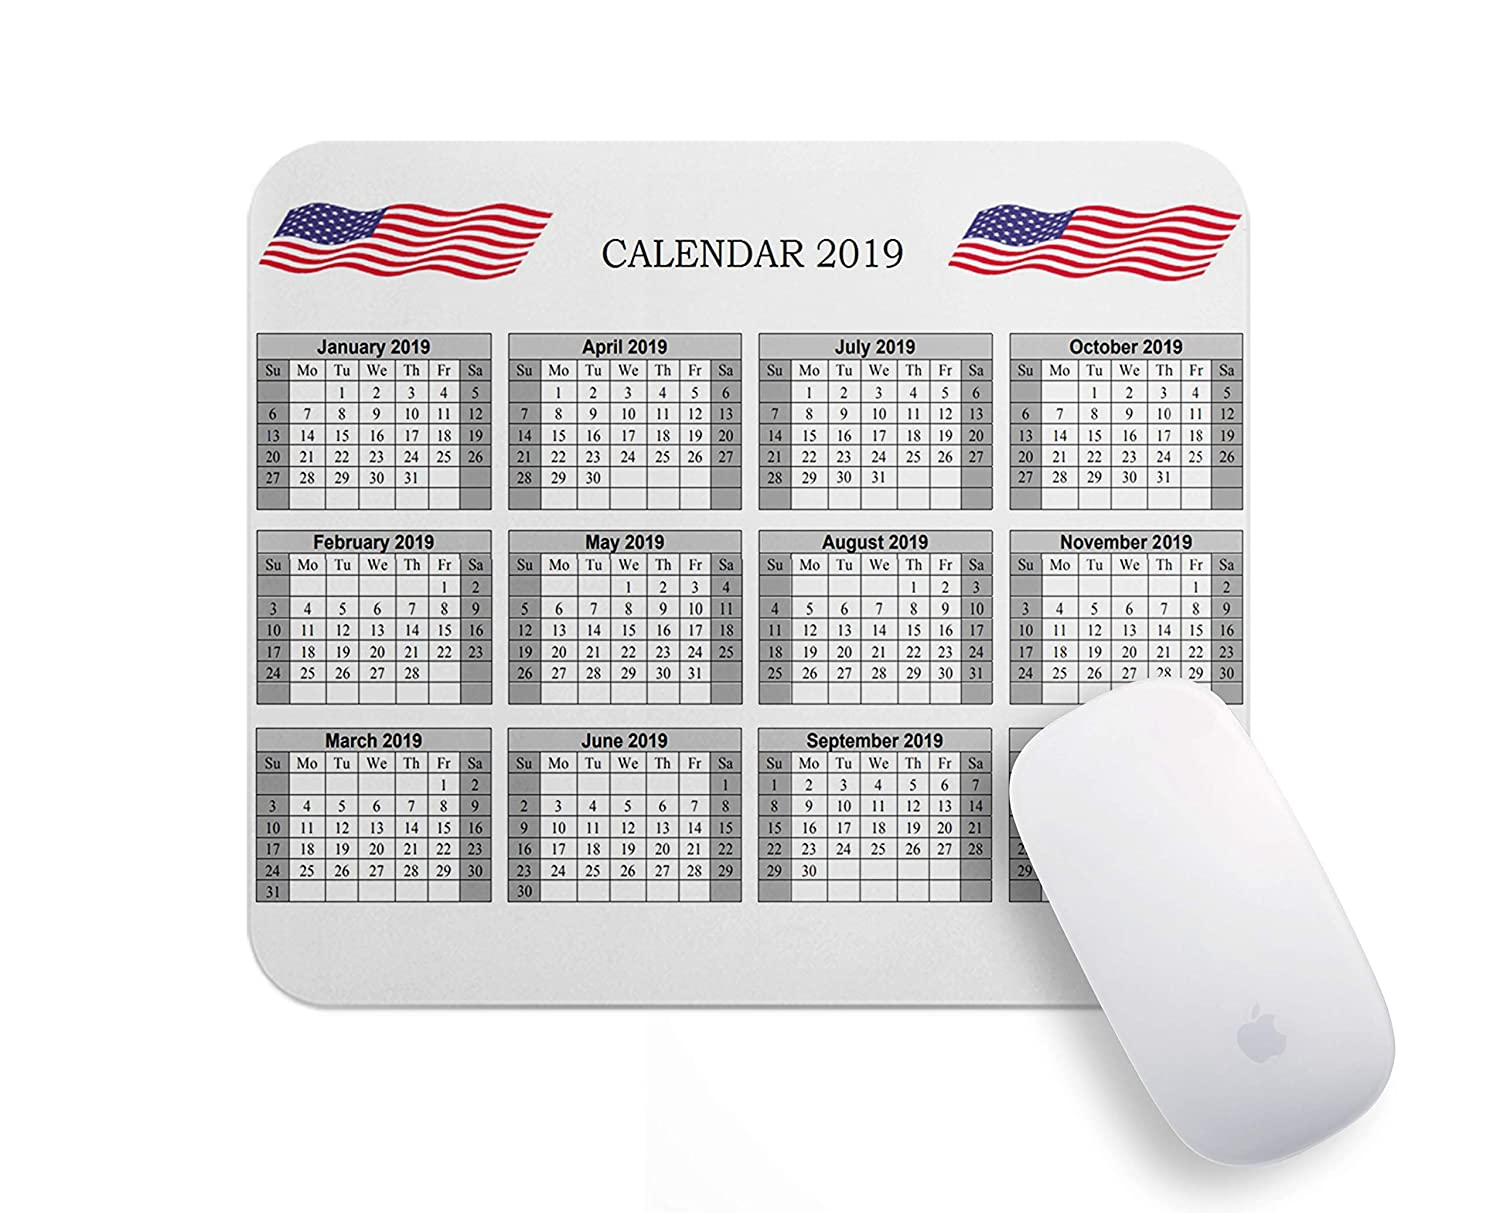 Christmas 2019 Calendar.Personalized Christmas Gifts 2019 Calendar Mouse Pad Gaming Mousepad American Flag Calendars 2019 Mousepads Rectangle Non Slip Rubber Mouse Pads